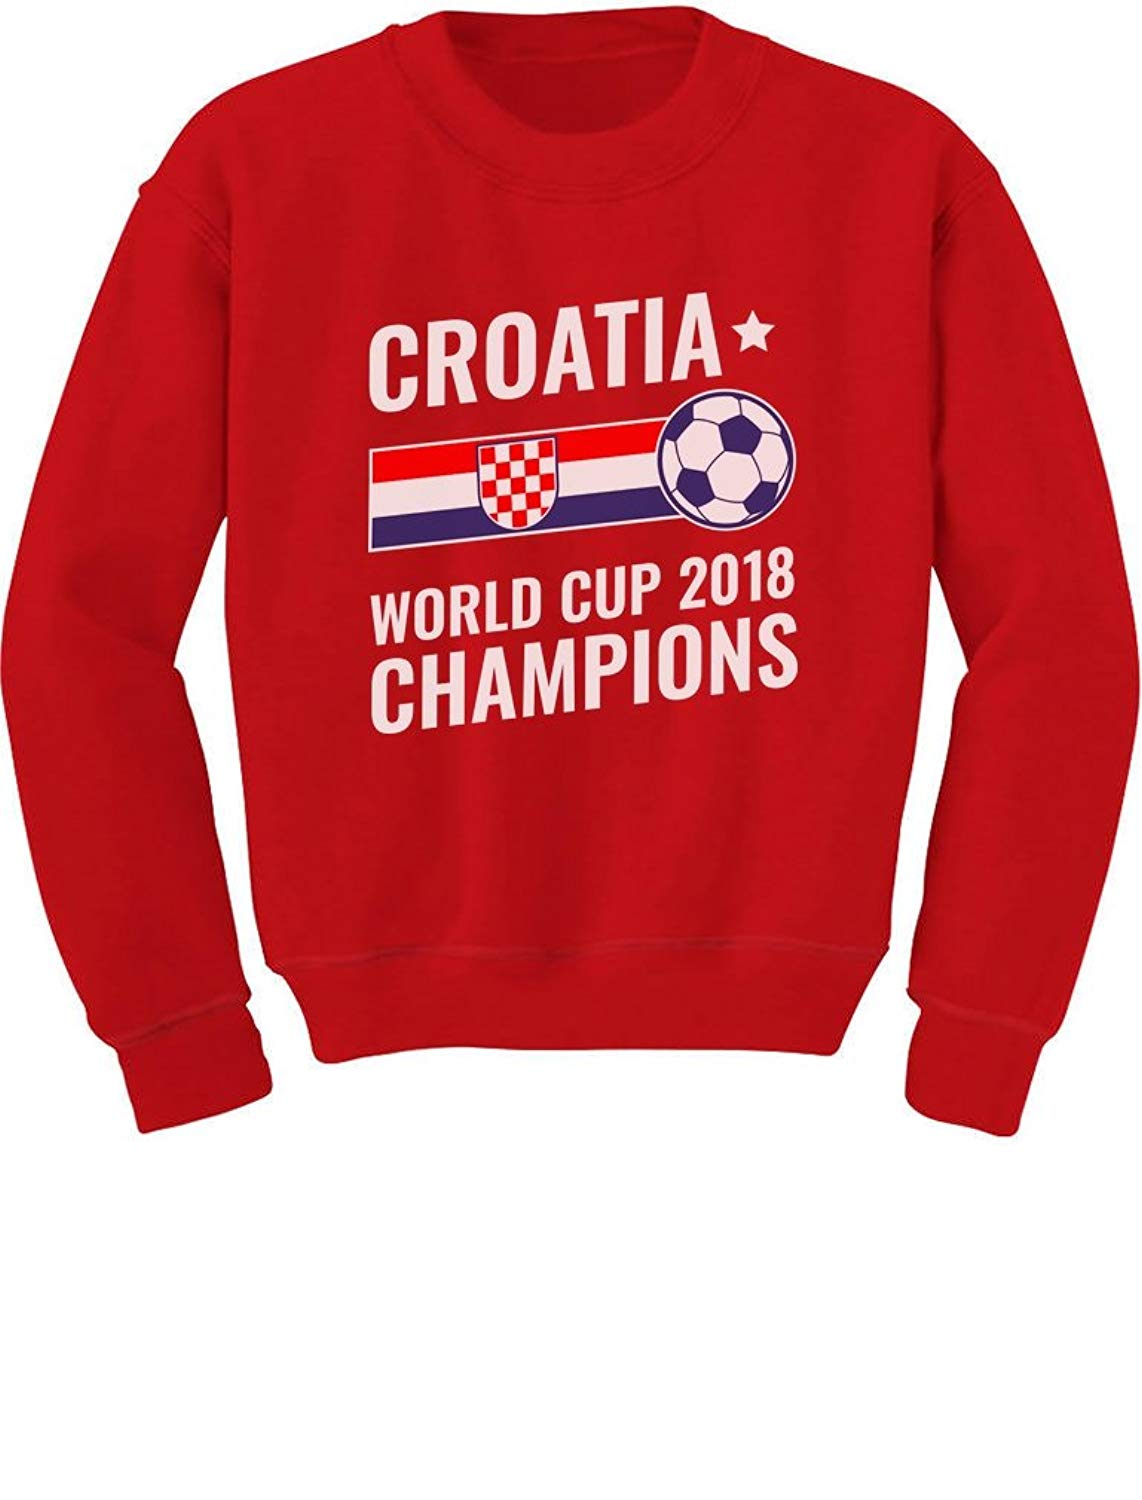 f38adbf7 Get Quotations · Tstars - Croatia 2018 Champions National Soccer Team Fans  Youth Kids Sweatshirt